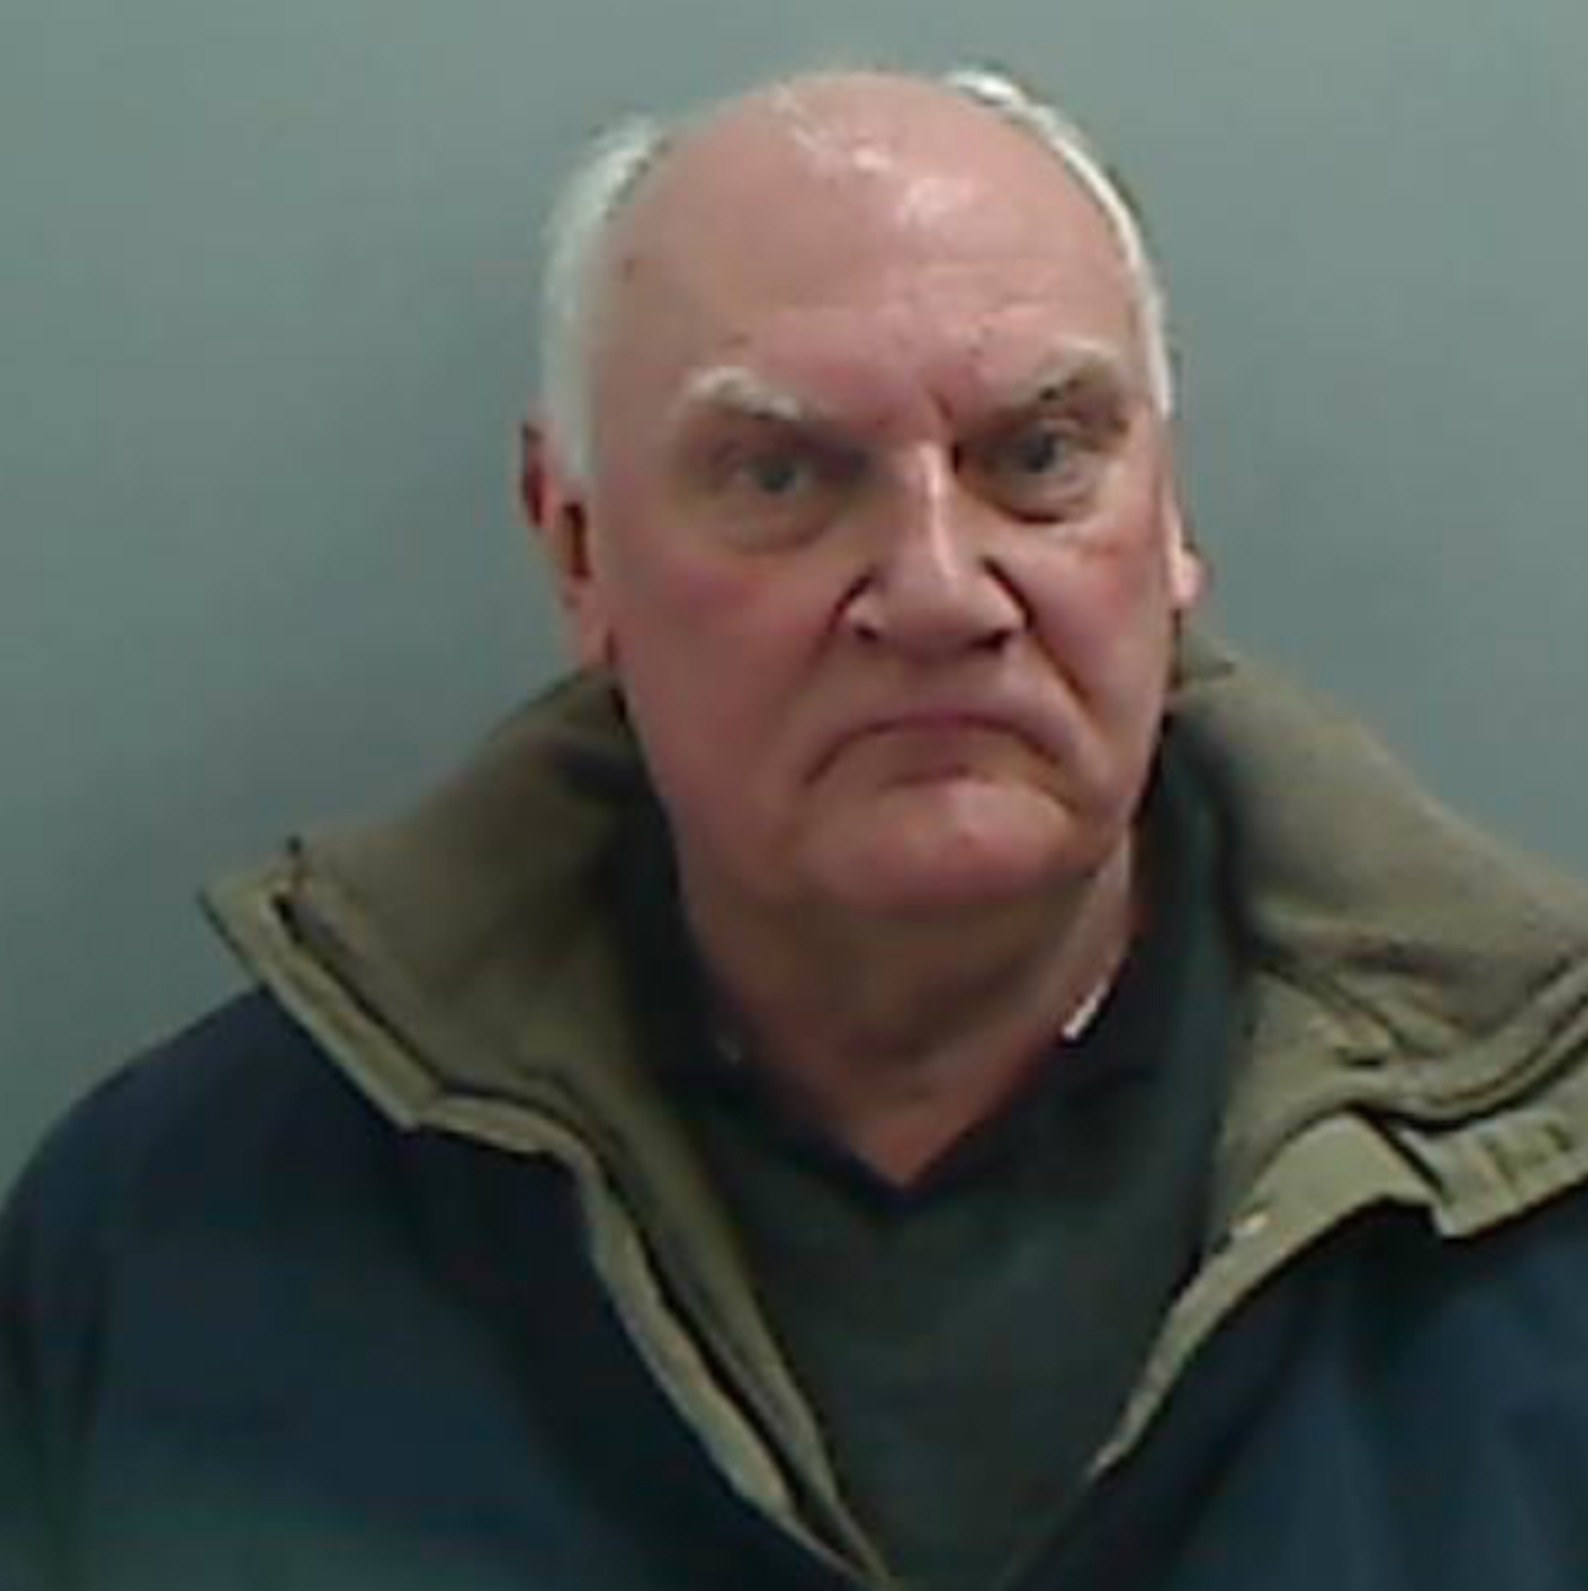 Child Molester Went On The Run Before Trial Tyne Tees